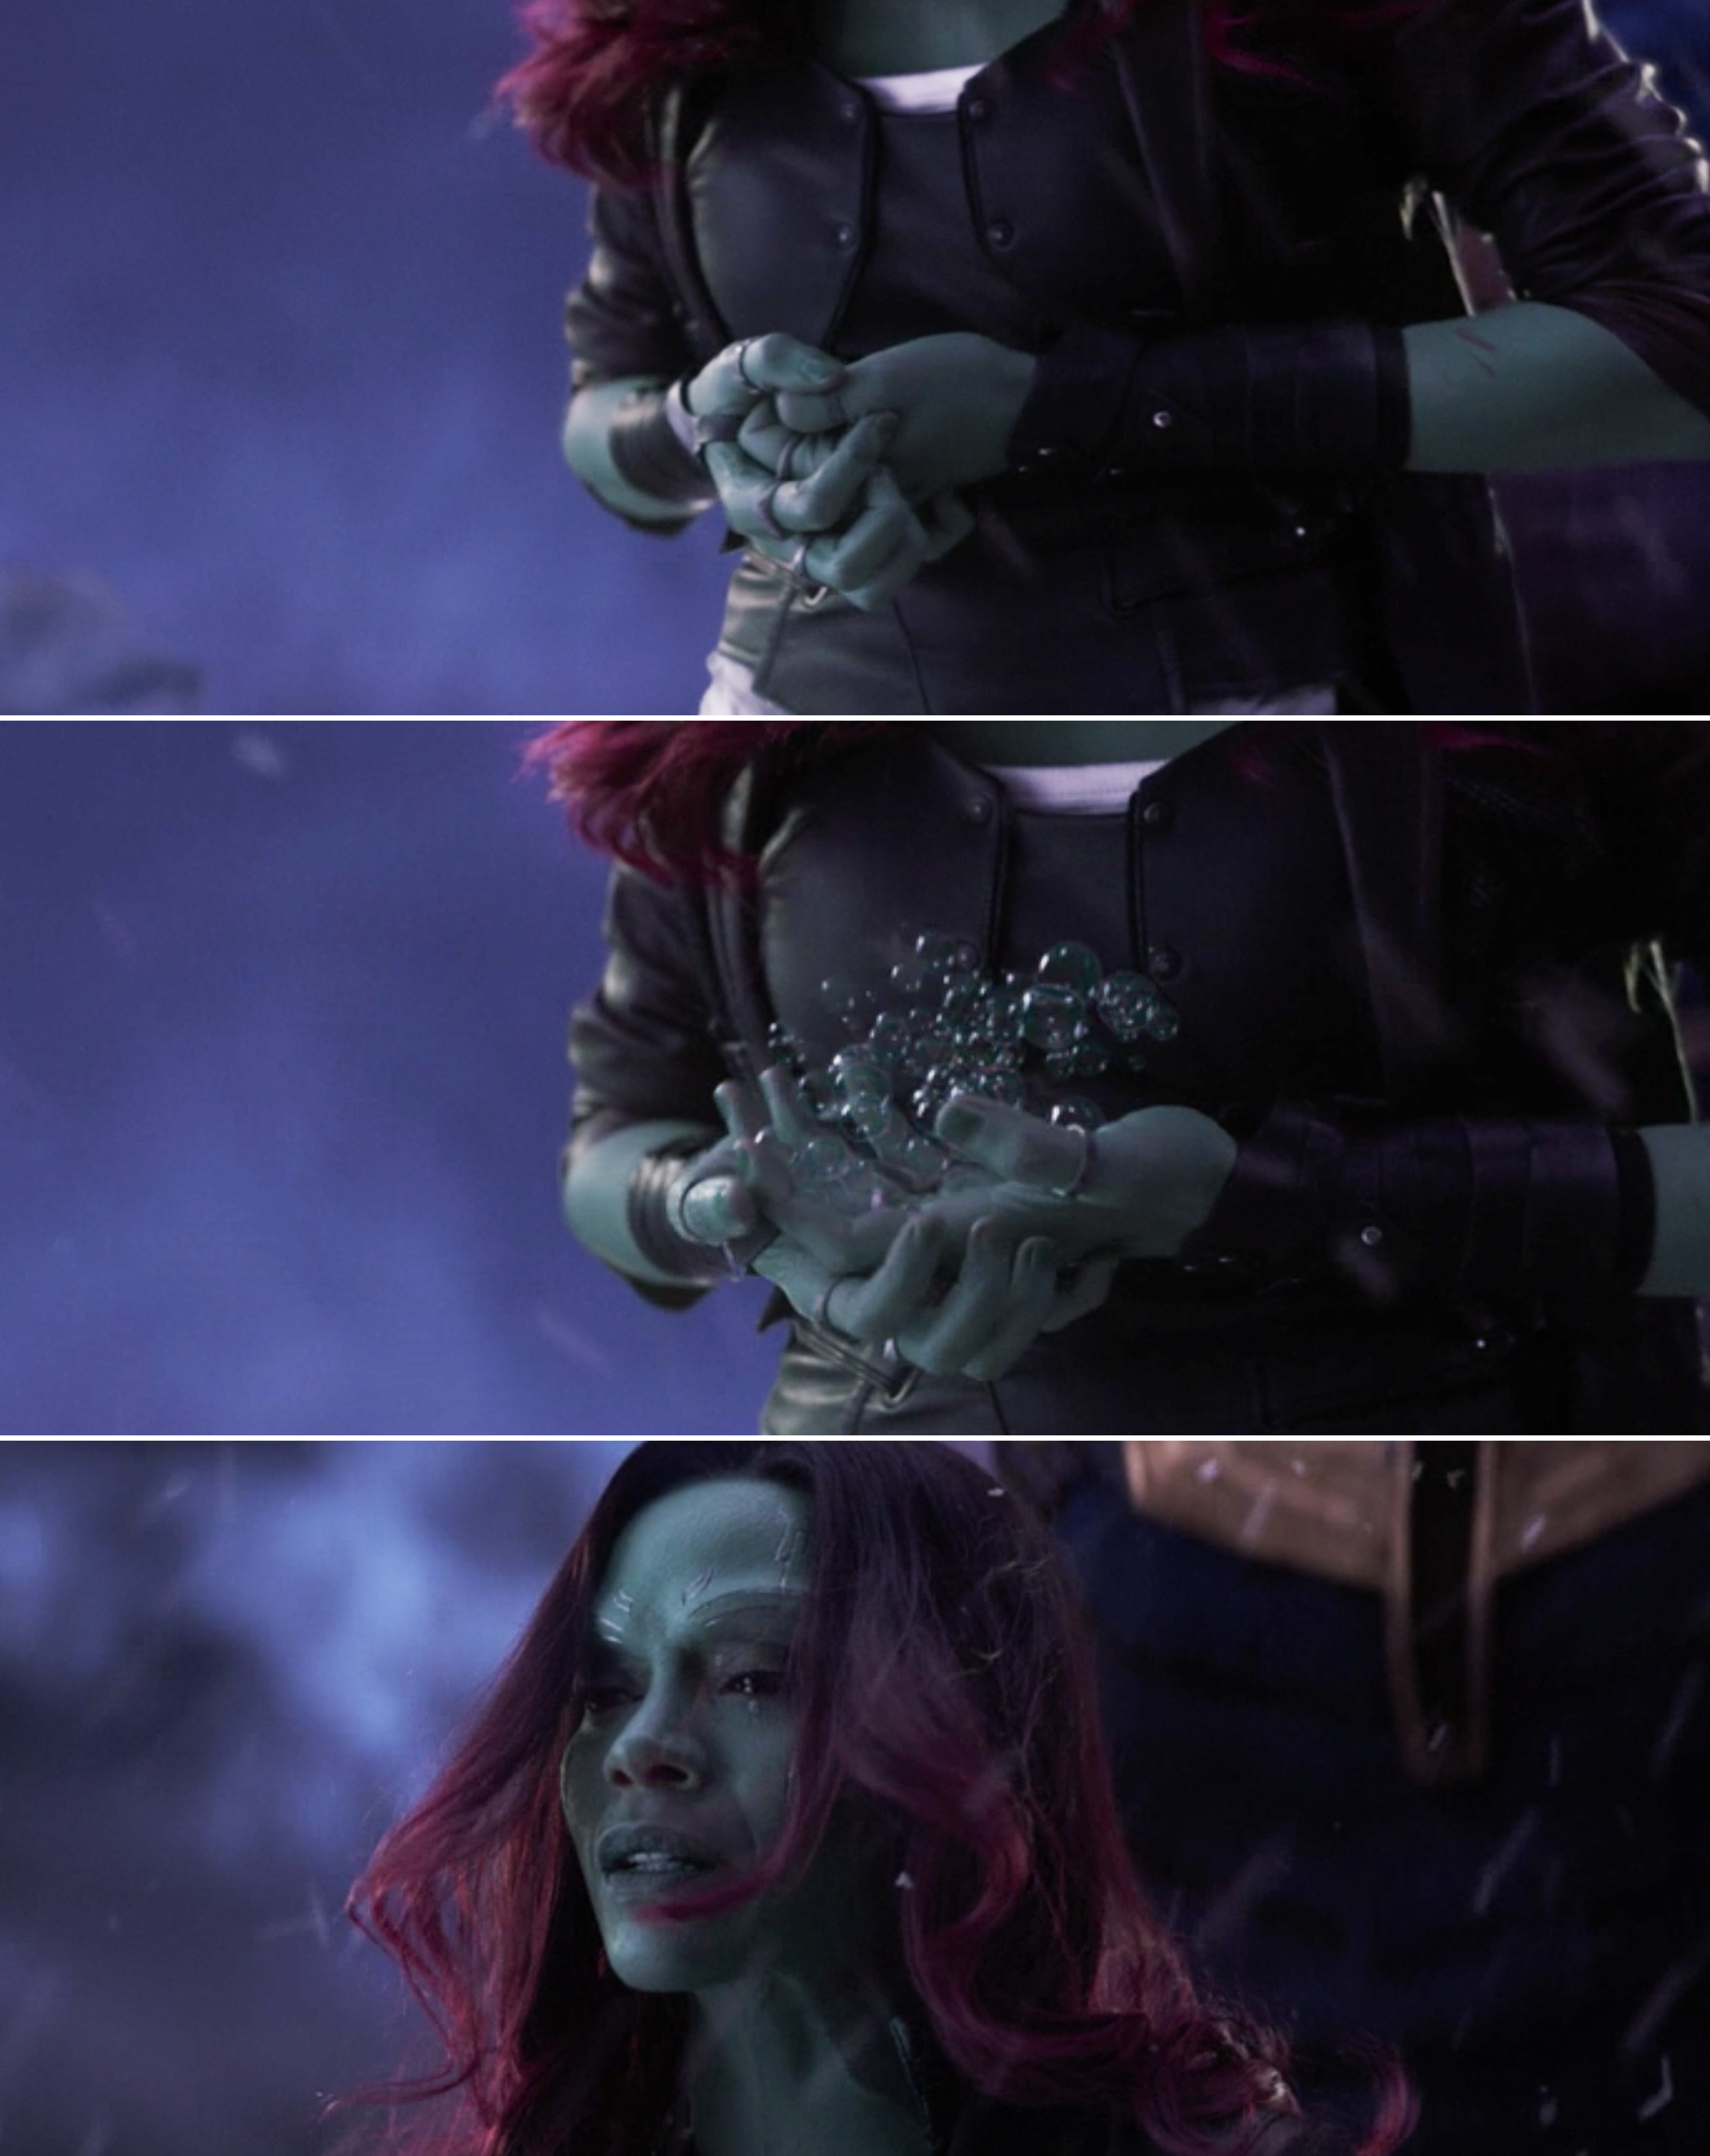 The knife Gamora is holding turning to bubbles and Gamora looking up and crying